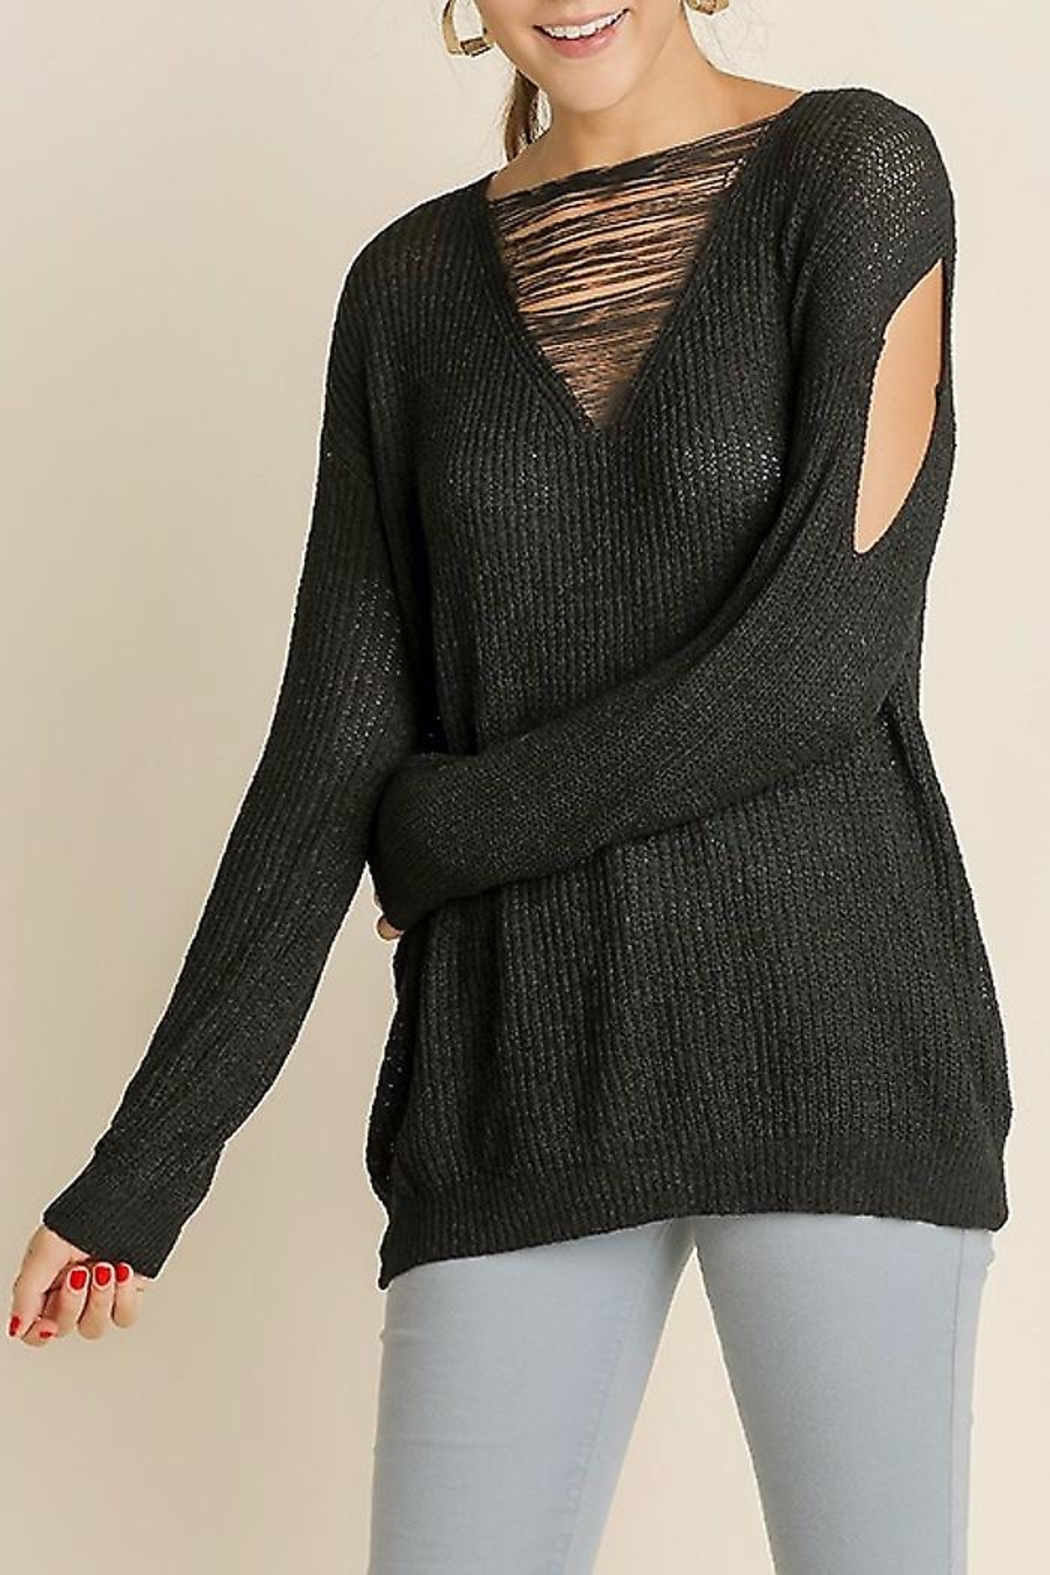 People Outfitter Distressed Knit Sweater - Front Cropped Image